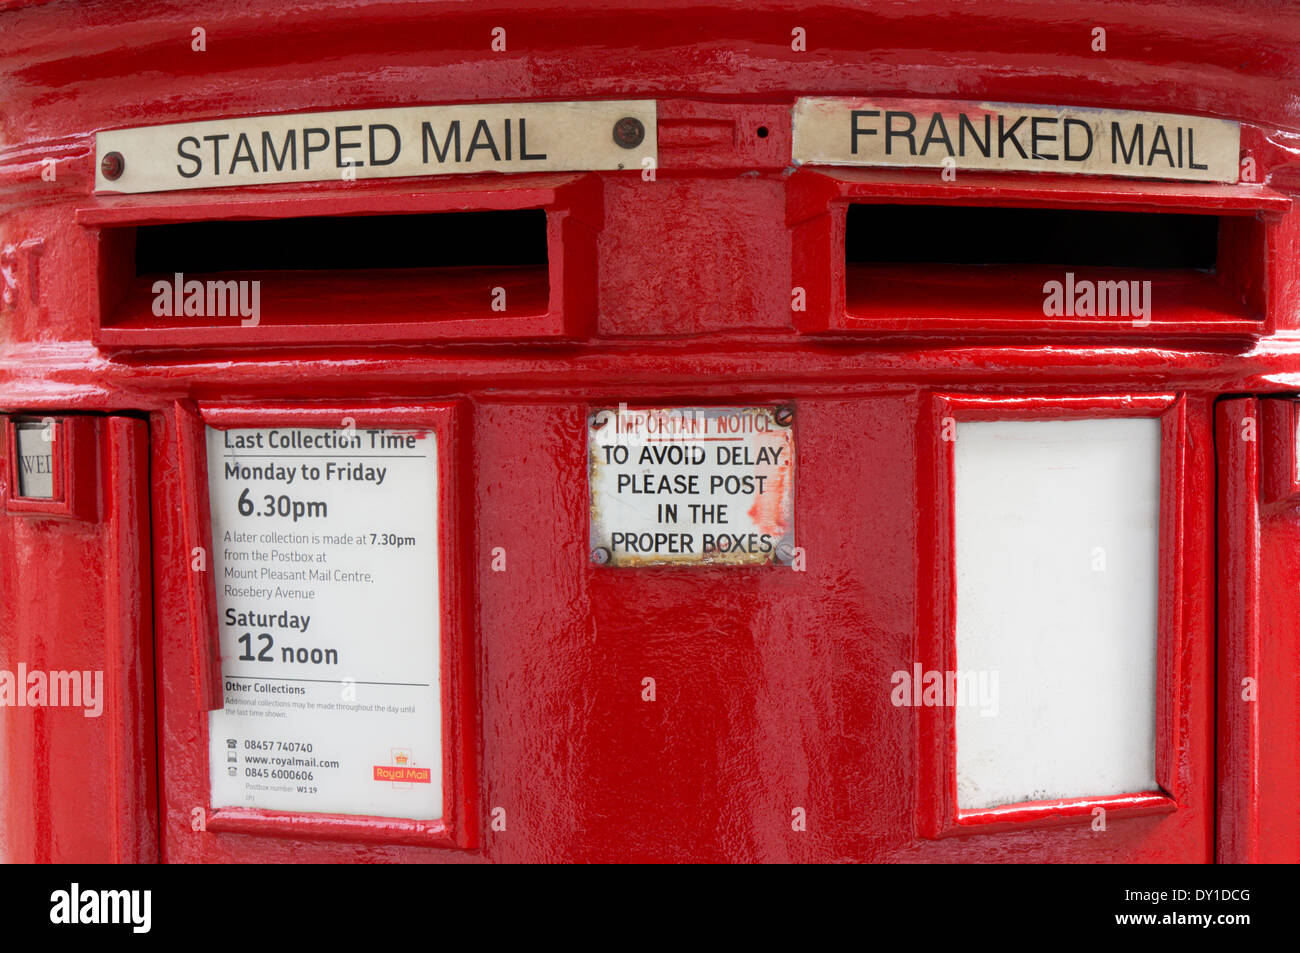 A pillar box with separate openings for stamped and franked mail. - Stock Image